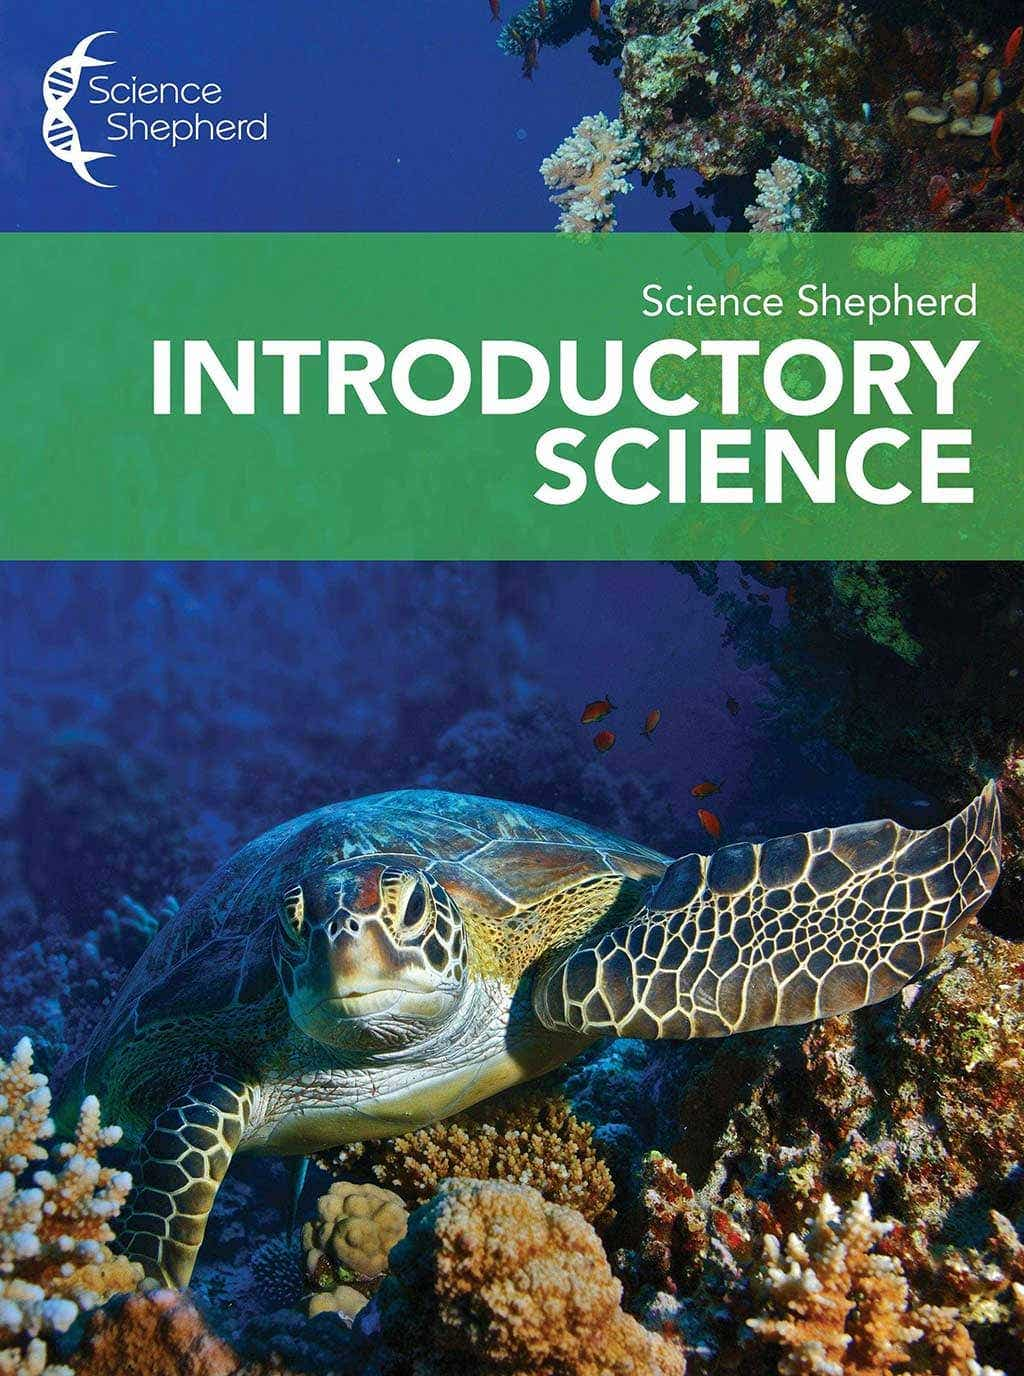 Science Shepherd Christian Homeschool Curriculum Introductory Science Video Course cover of turtle